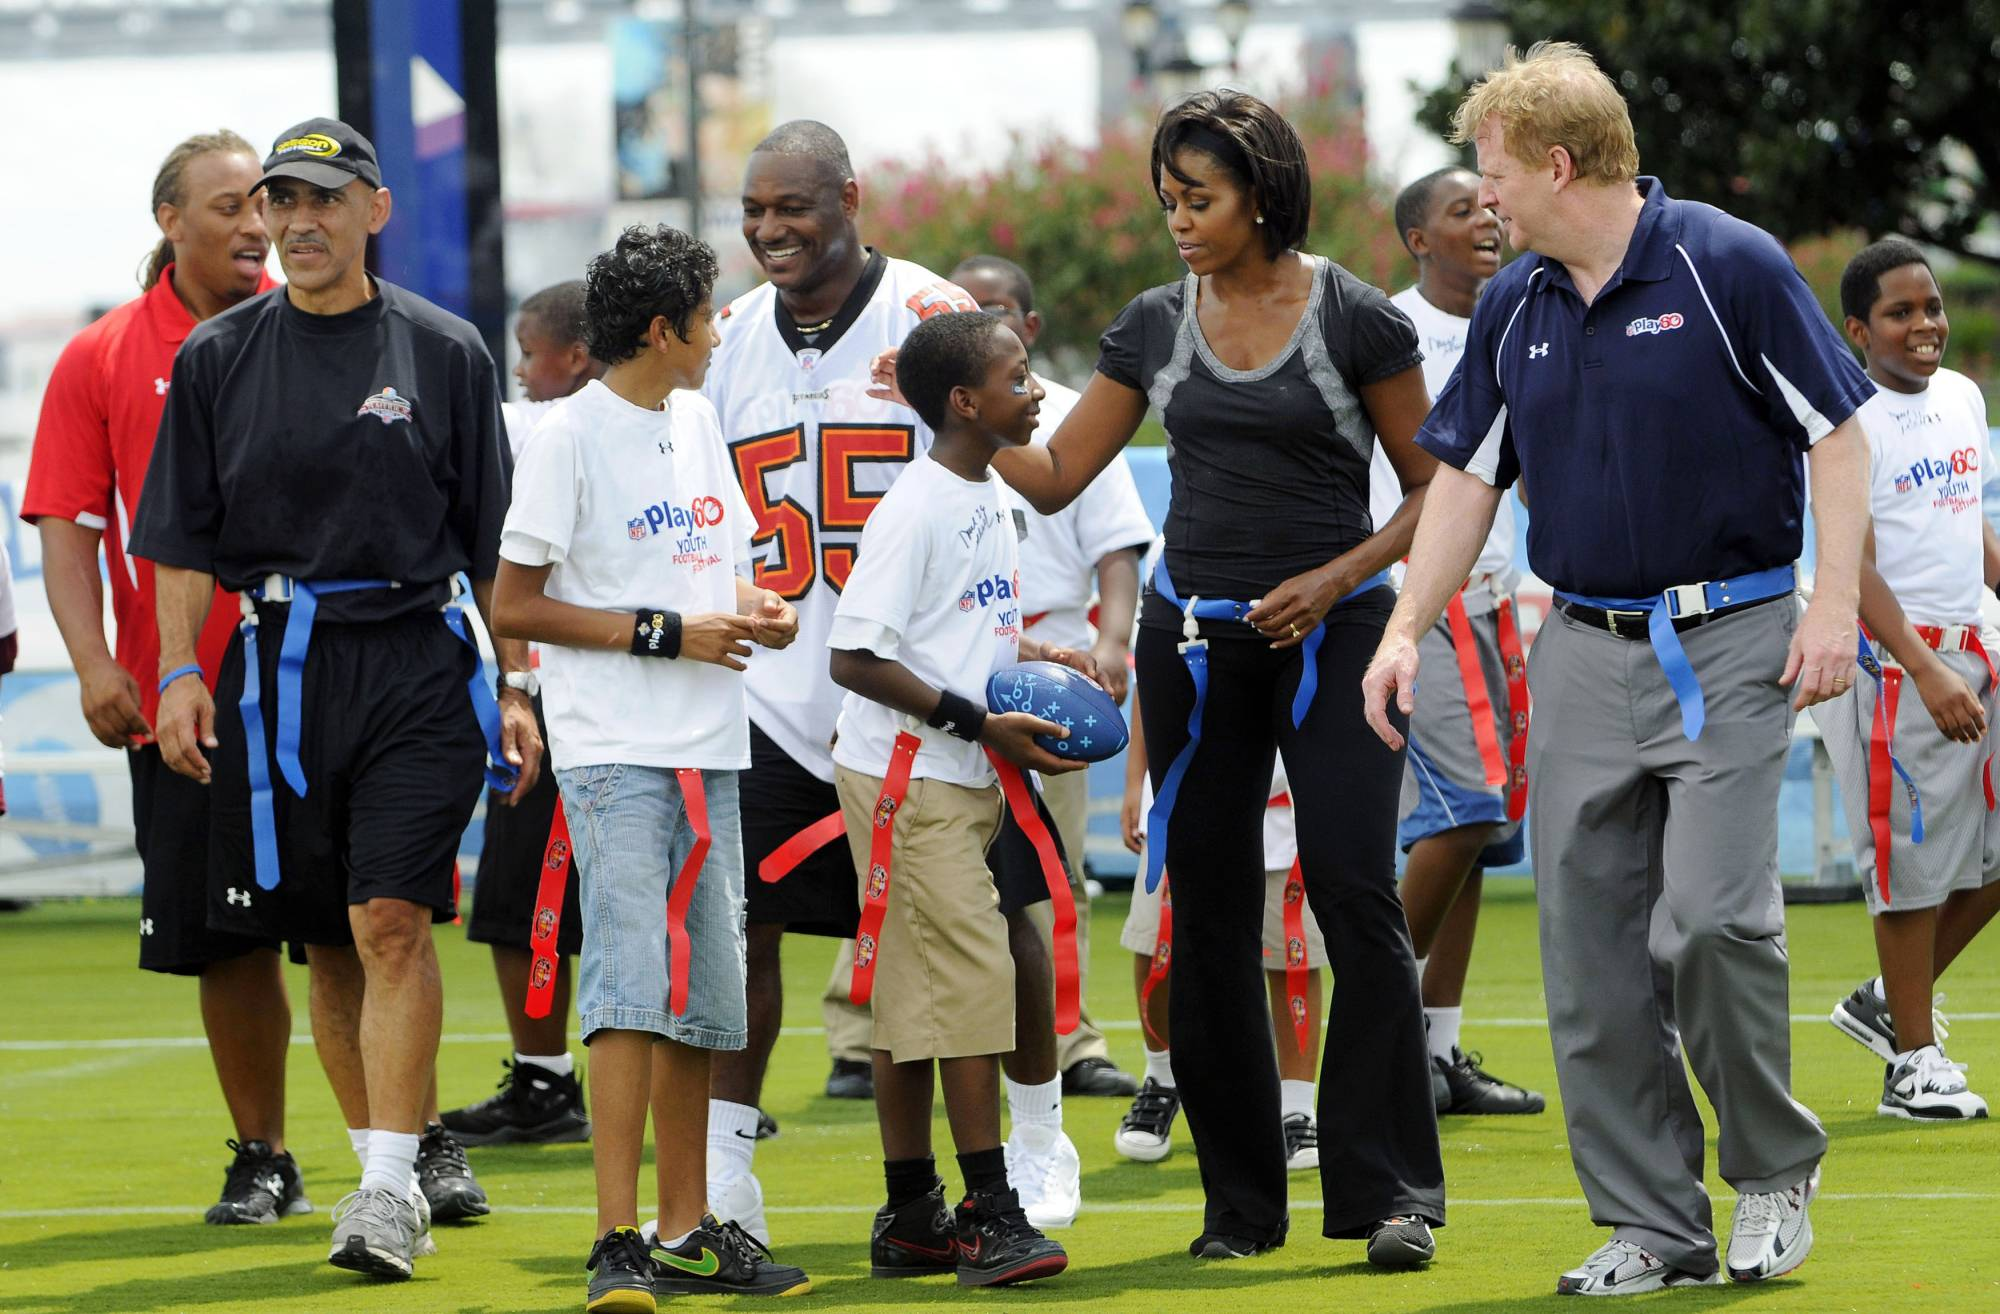 U.S. first lady Michelle Obama (second from right) participates in a flag football event with former NFL coach Tony Dungy (second from left), and NFL Commissioner Roger Goodell (right) as part of her campaign to fight child obesity on Sept. 8, 2018, in New Orleans. | REUTERS